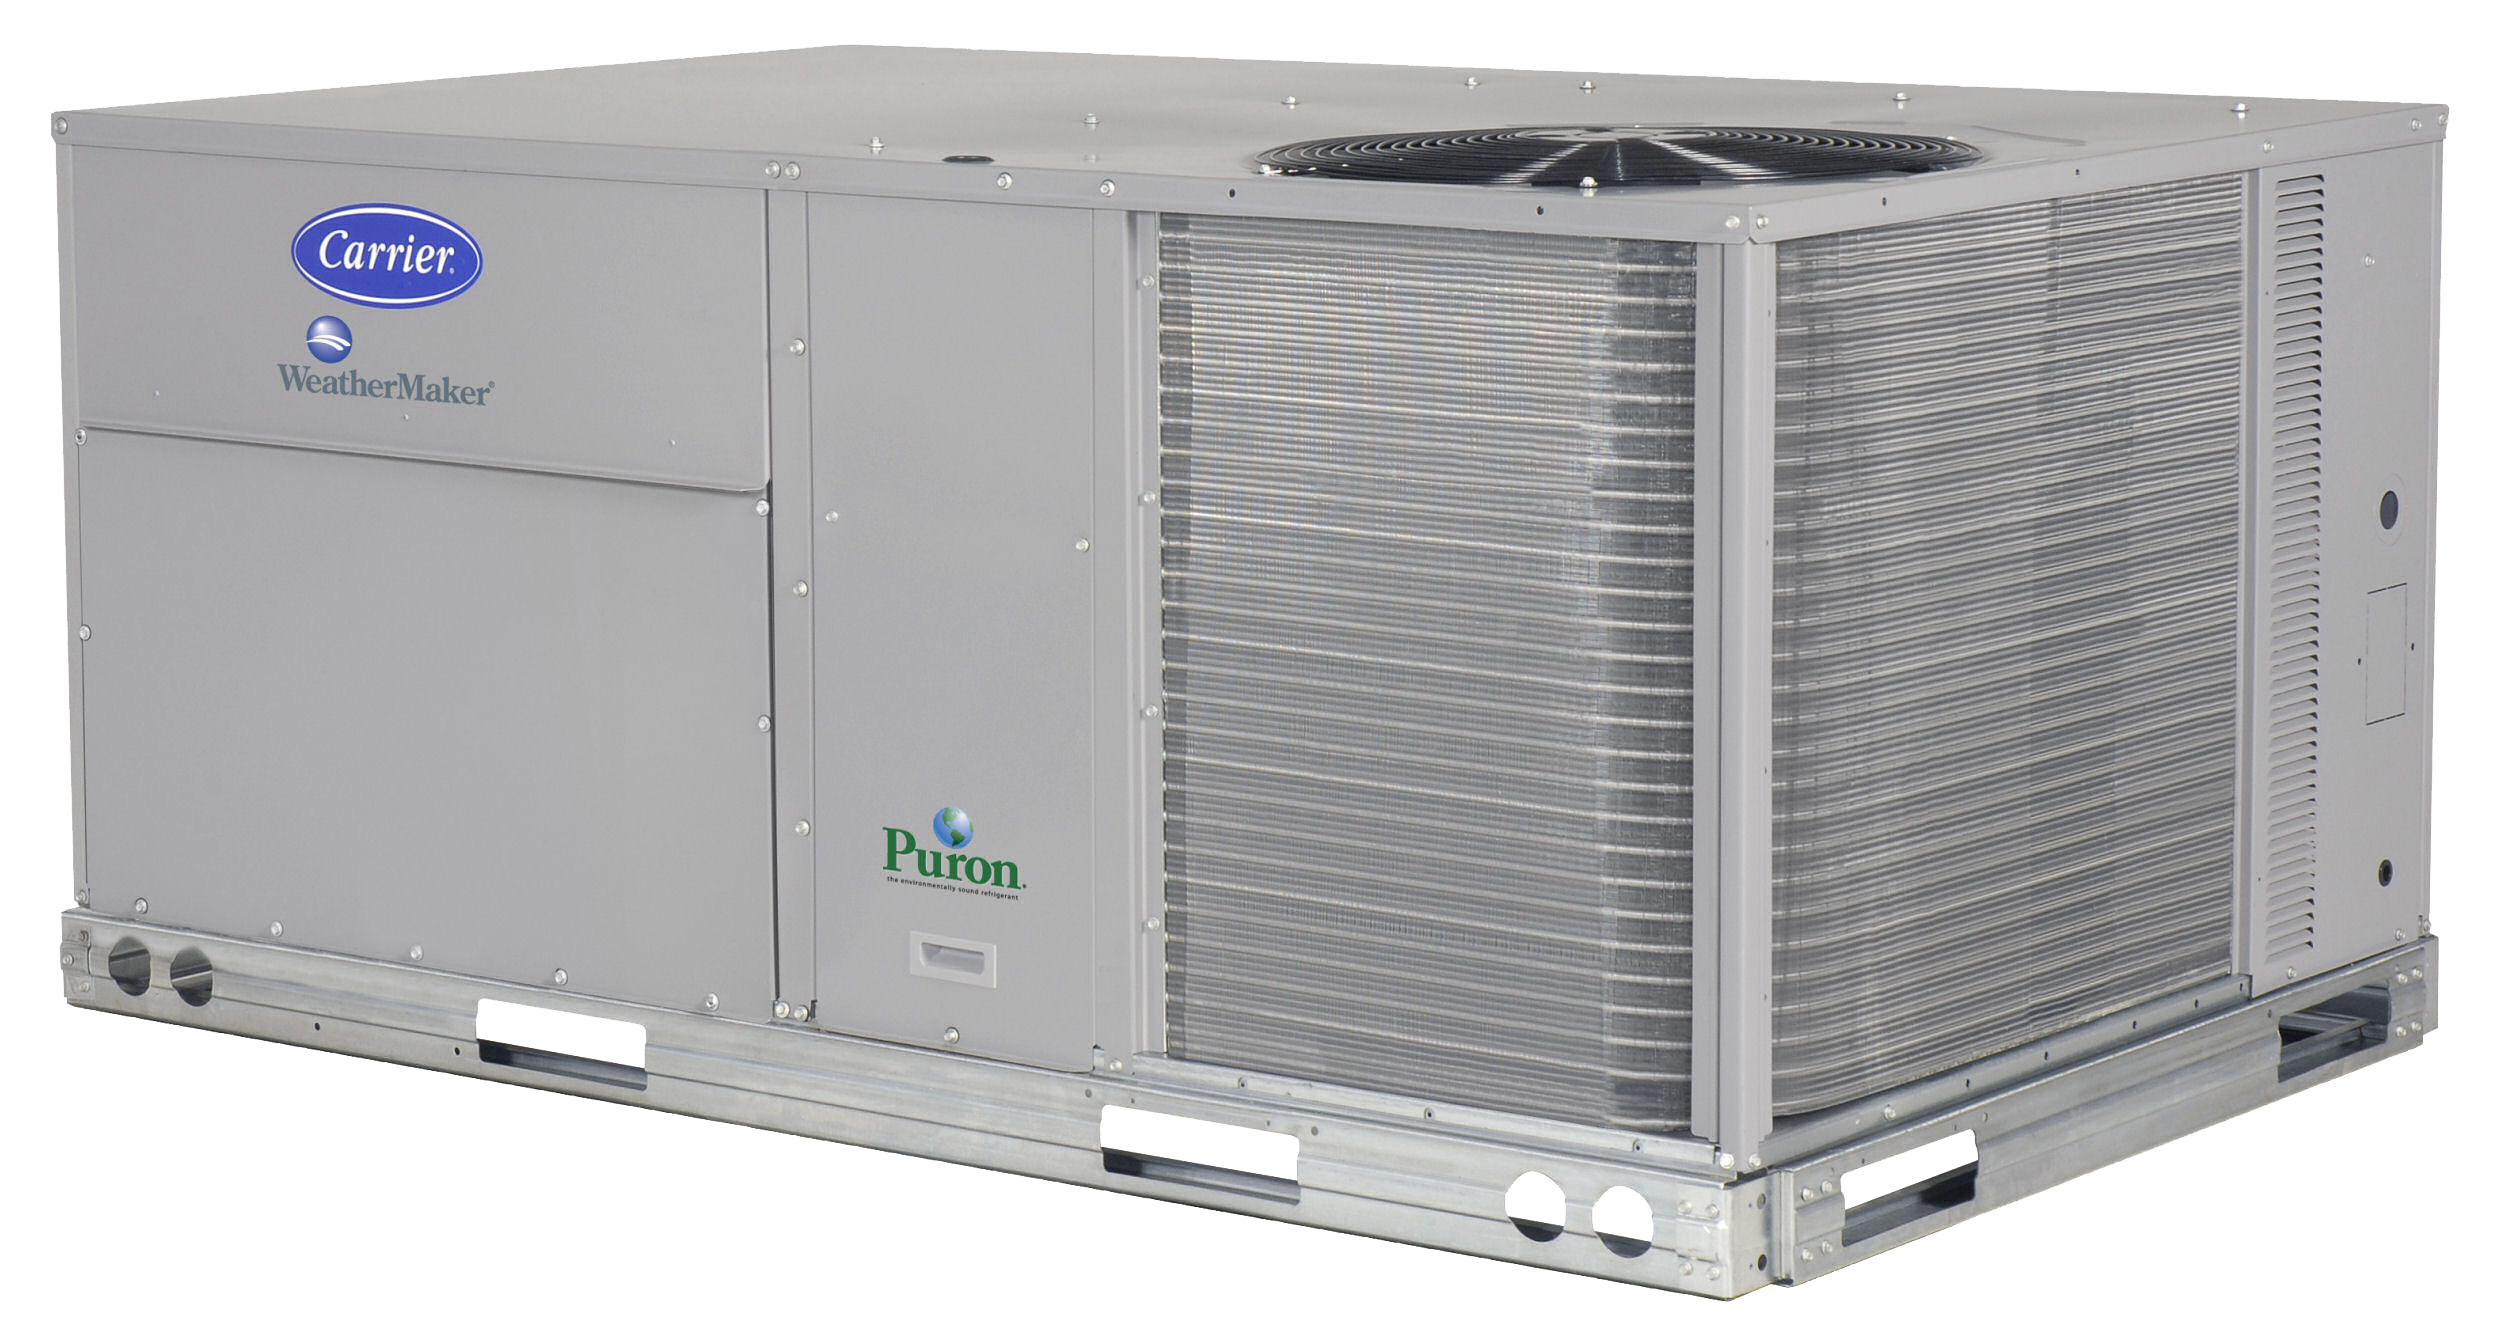 Classic building blocks abel building solutions - Main Air Handling Units And Ducting 6